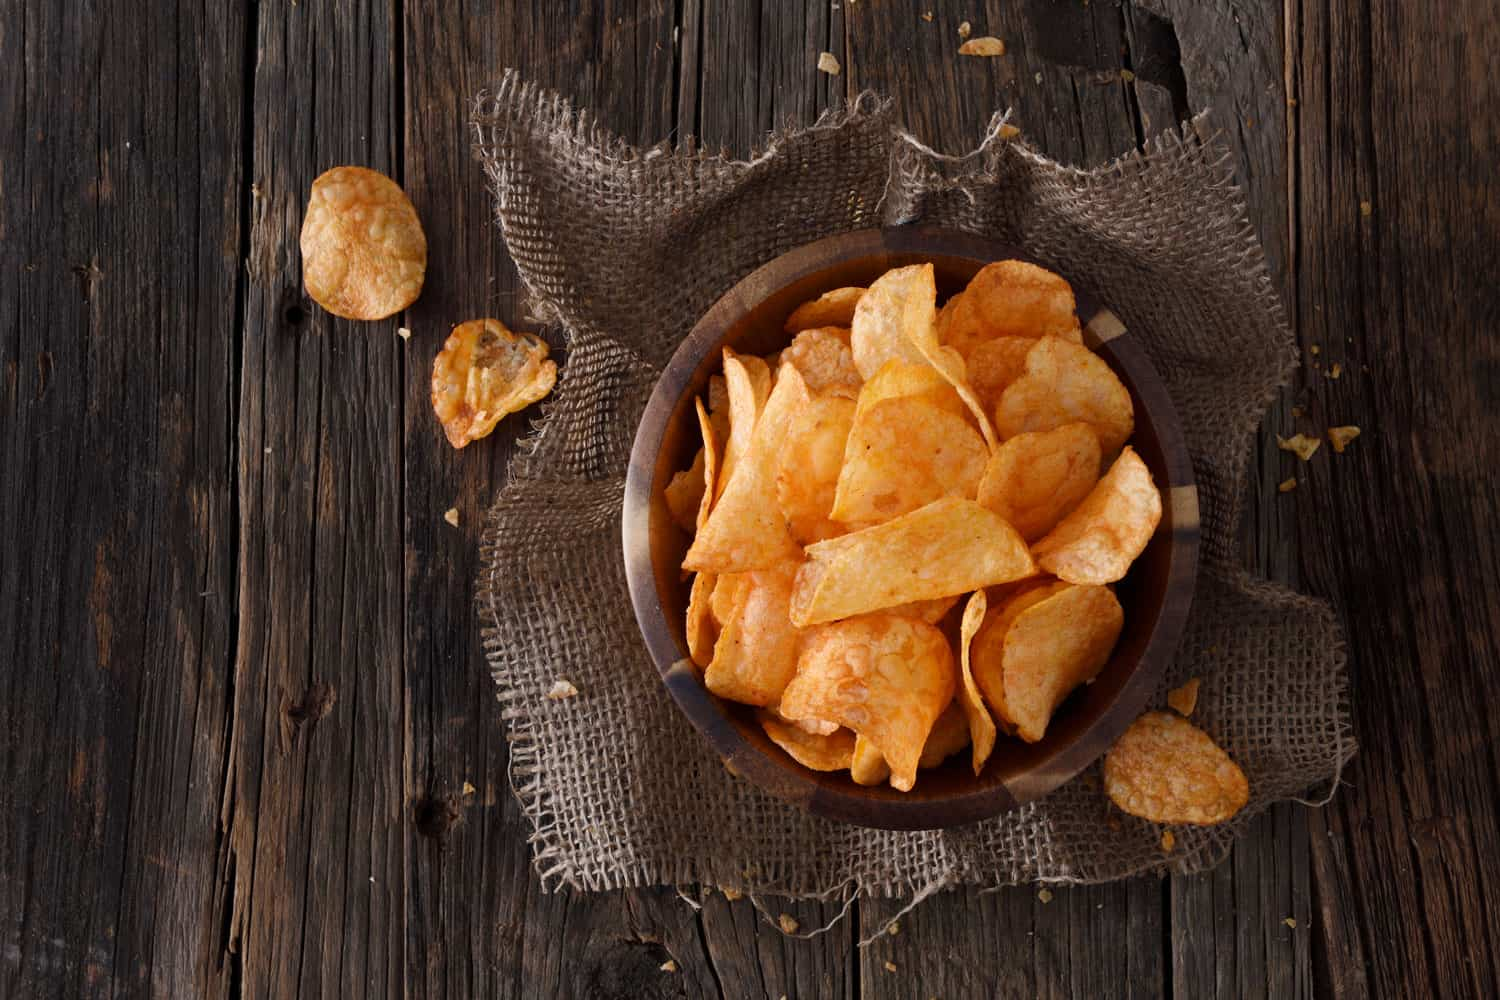 Barbecue flavor potato chips in a wooden bowl, What Potatoes Are Best For Chips?